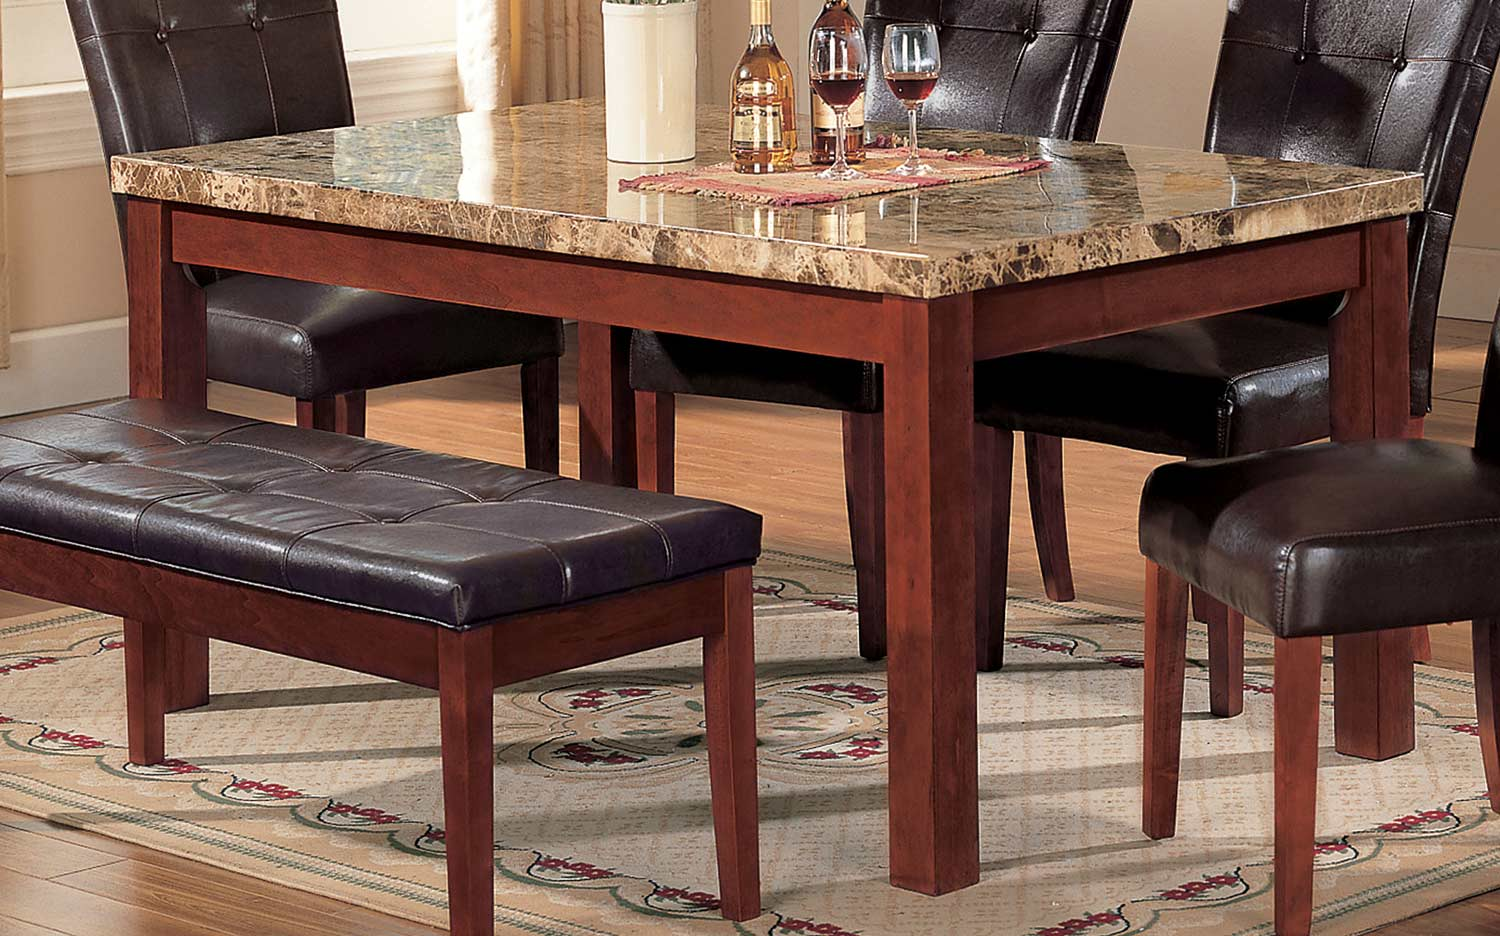 Acme Bologna Dining Table - Brown Marble/Brown Cherry